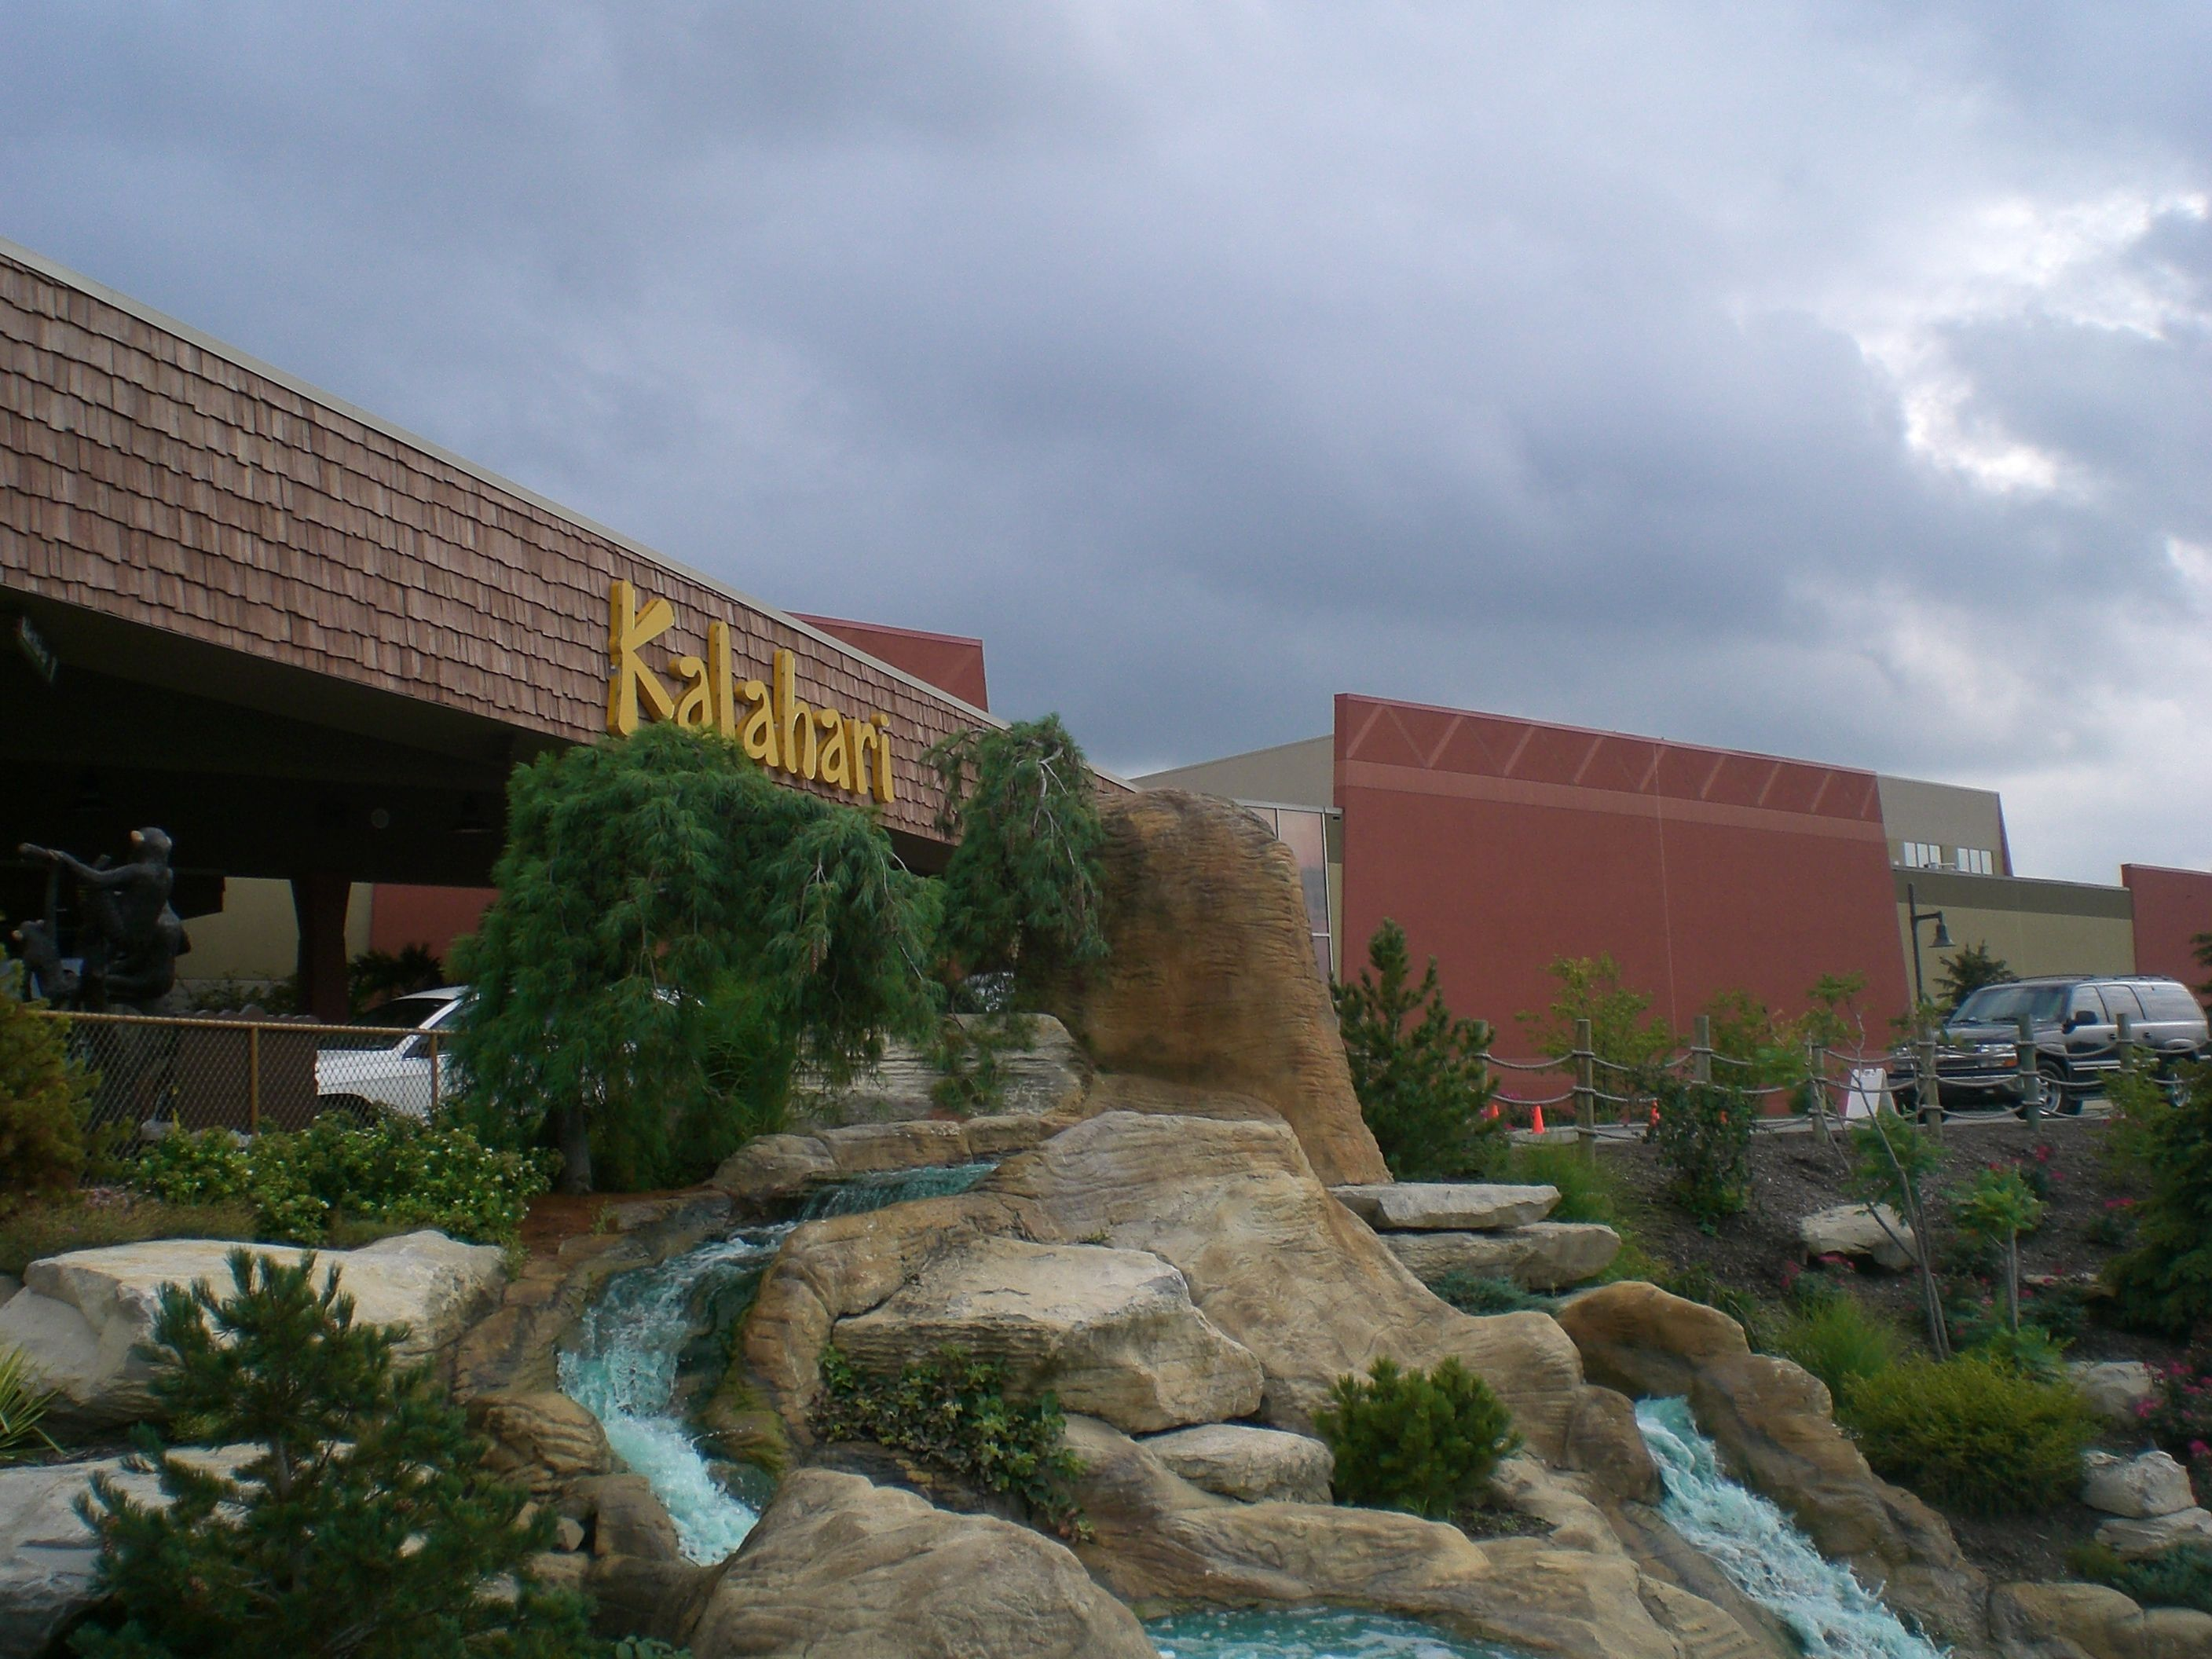 kalahari resort, sandusky, ohio | kalahari resort mt. pocono pa